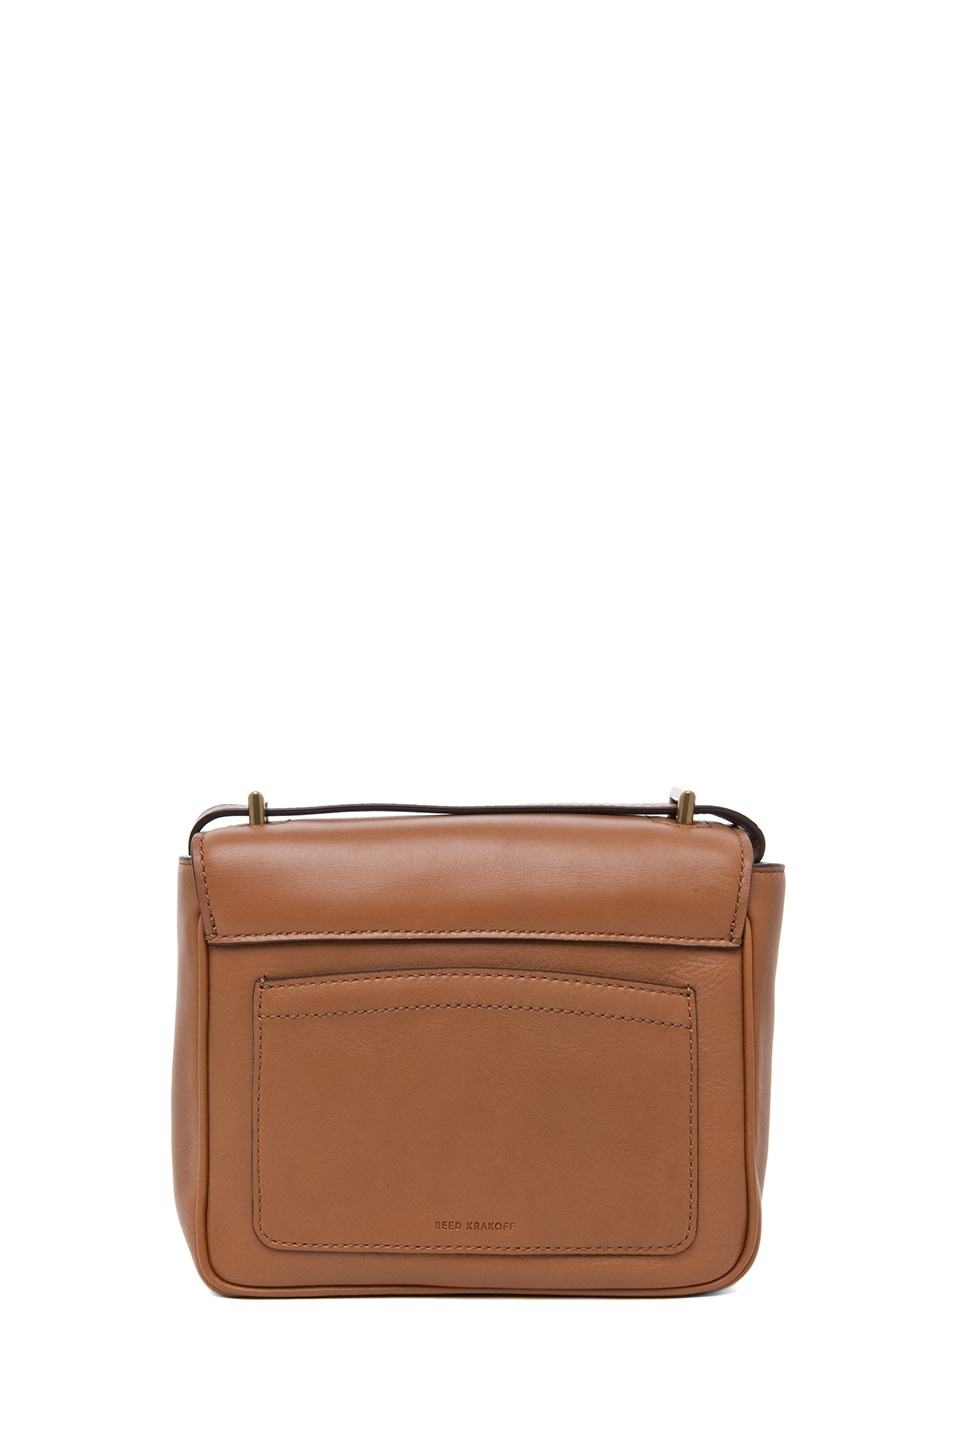 Image 2 of Reed Krakoff Standard Mini Shoulder Bag in Saddle